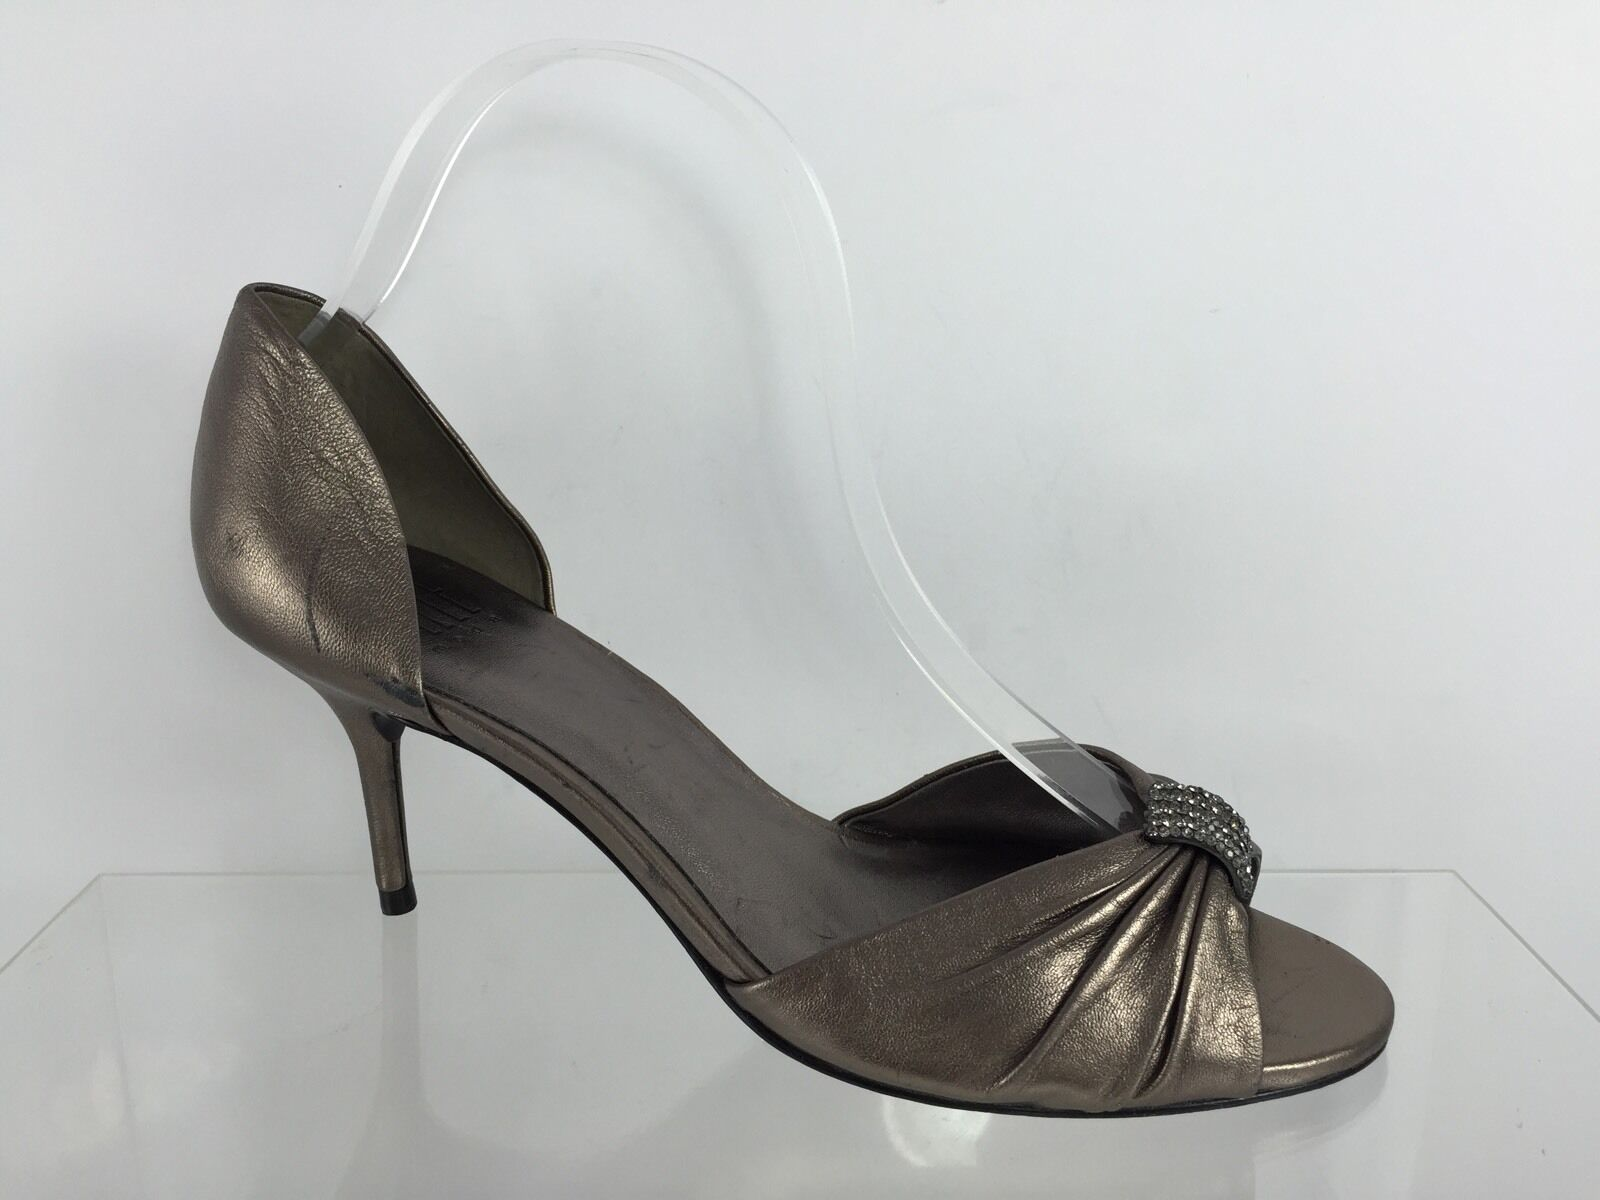 Pelle Moda donna Metallic Bronze Leather Heels 8 M